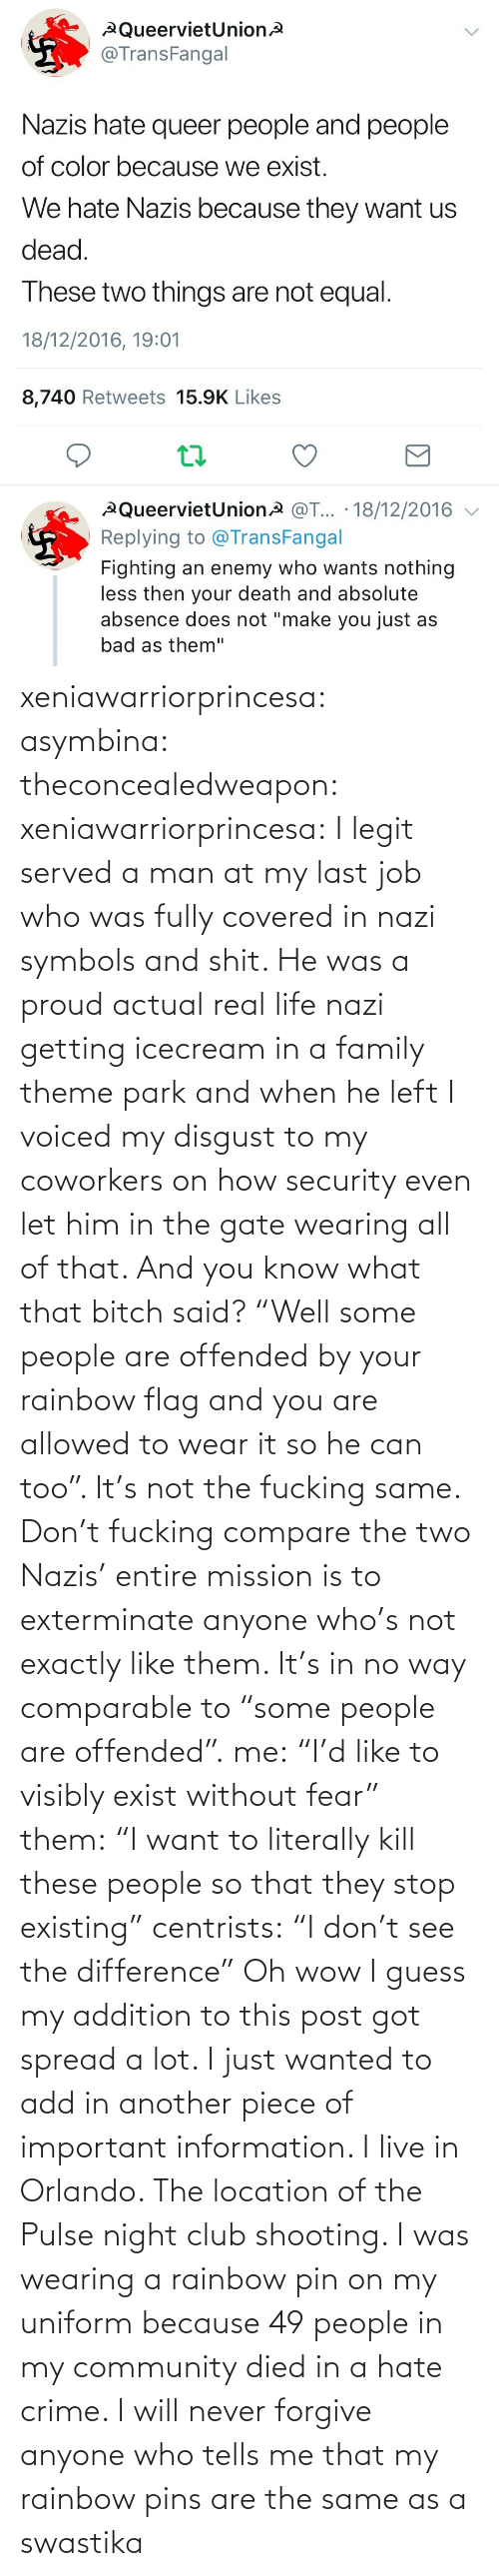 """security: xeniawarriorprincesa:  asymbina:  theconcealedweapon:  xeniawarriorprincesa:  I legit served a man at my last job who was fully covered in nazi symbols and shit. He was a proud actual real life nazi getting icecream in a family theme park and when he left I voiced my disgust to my coworkers on how security even let him in the gate wearing all of that. And you know what that bitch said? """"Well some people are offended by your rainbow flag and you are allowed to wear it so he can too"""". It's not the fucking same. Don't fucking compare the two  Nazis' entire mission is to exterminate anyone who's not exactly like them. It's in no way comparable to """"some people are offended"""".  me:""""I'd like to visibly exist without fear"""" them:""""I want to literally kill these people so that they stop existing"""" centrists:""""I don't see the difference""""   Oh wow I guess my addition to this post got spread a lot. I just wanted to add in another piece of important information. I live in Orlando. The location of the Pulse night club shooting. I was wearing a rainbow pin on my uniform because 49 people in my community died in a hate crime. I will never forgive anyone who tells me that my rainbow pins are the same as a swastika"""